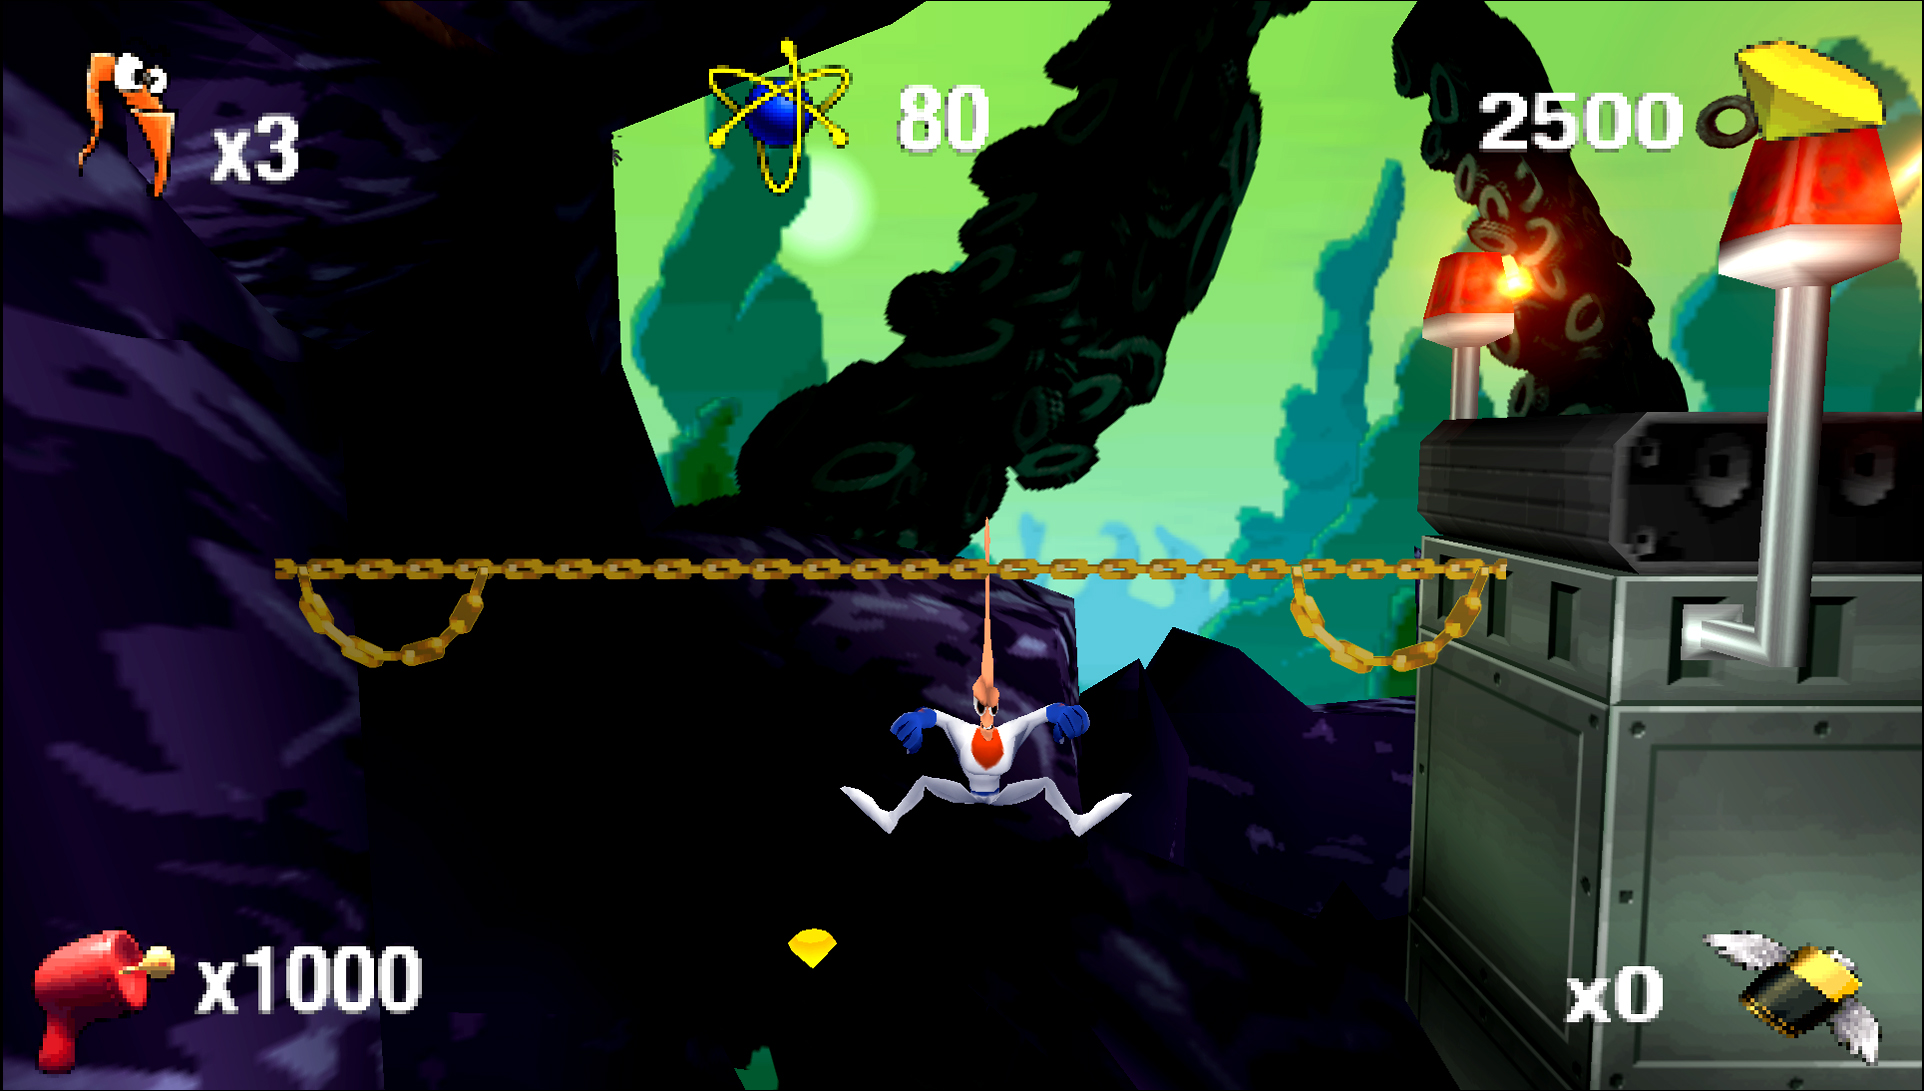 Interplay to revive Earthworm Jim licence